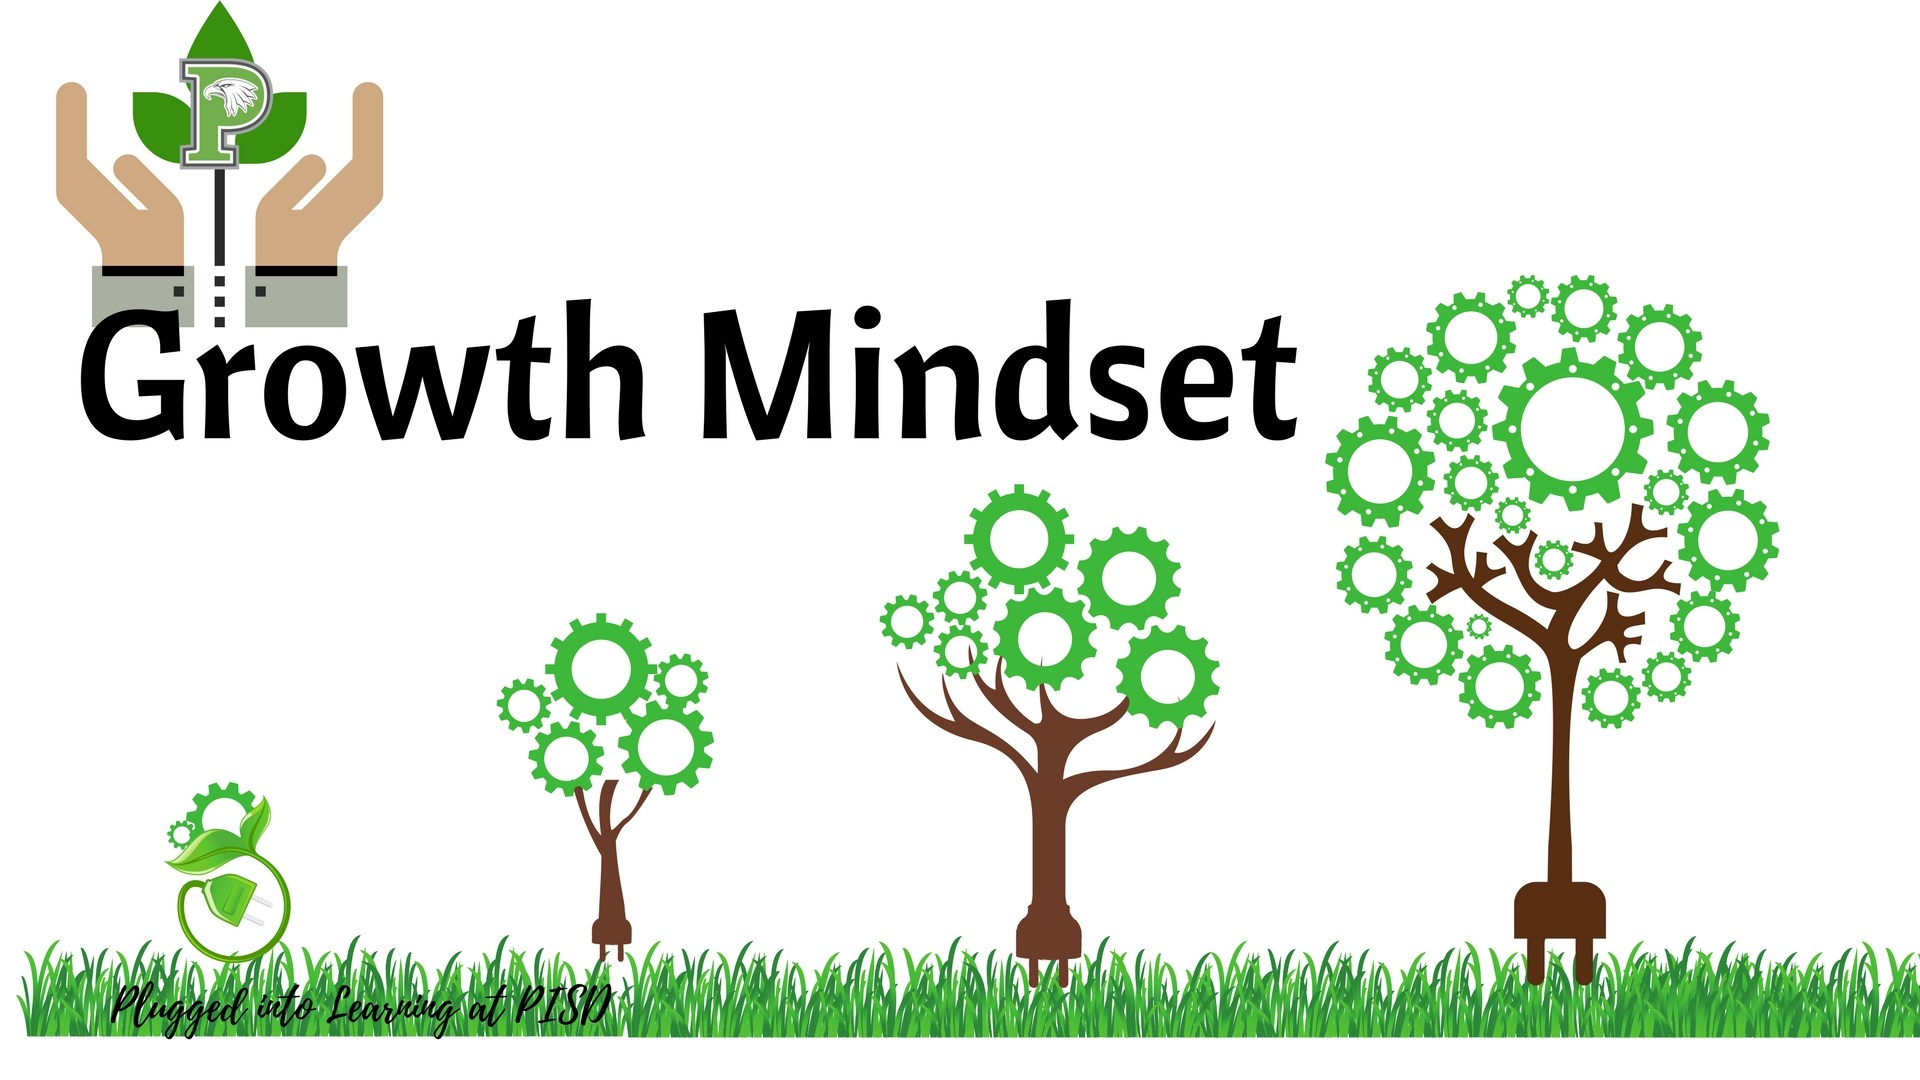 Growth Mindset symbols